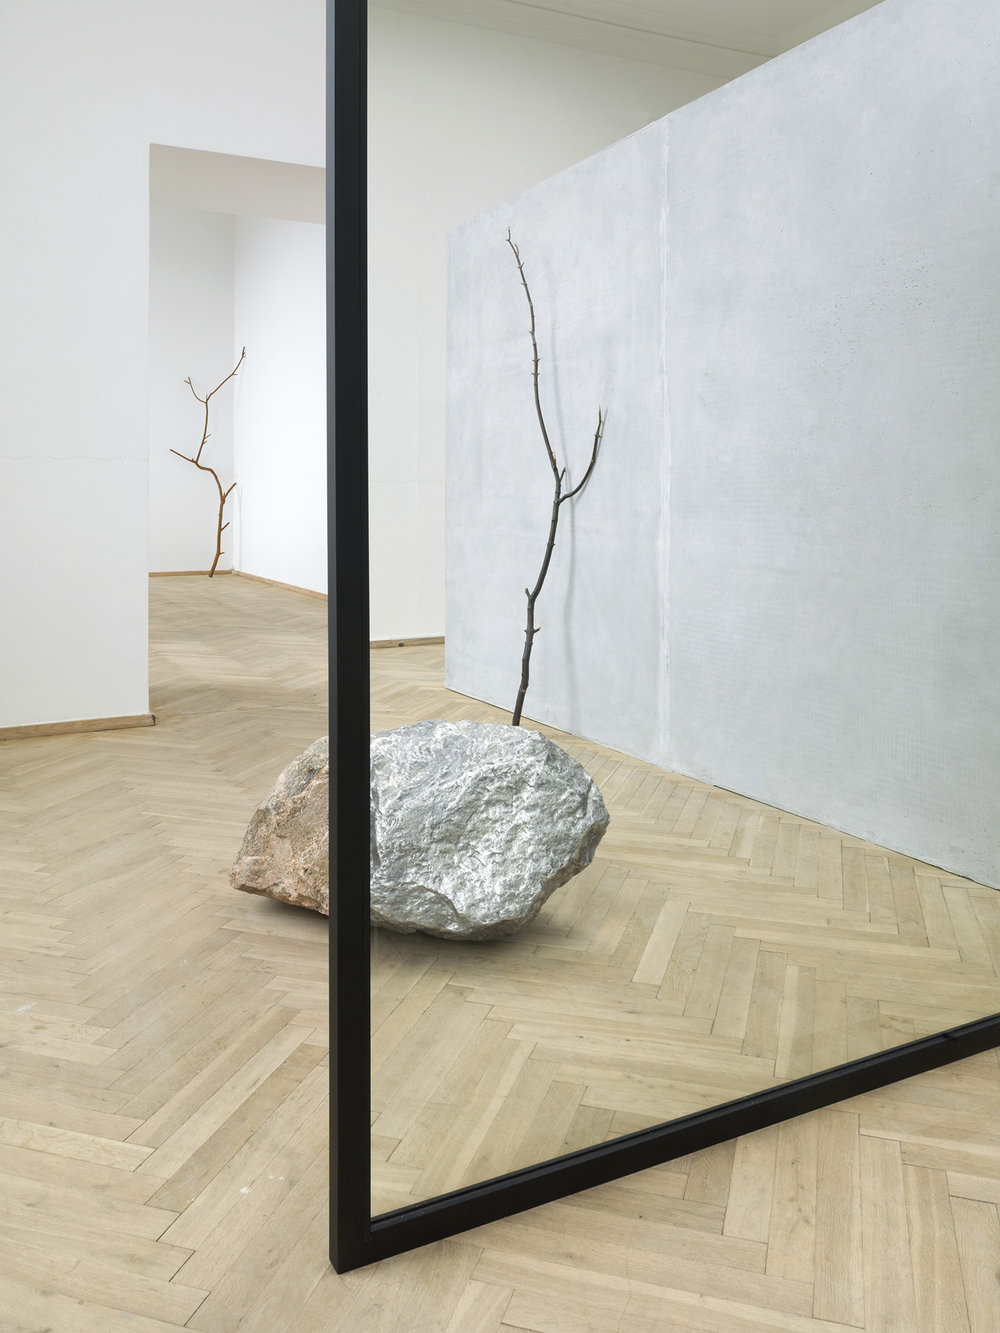 Alicja Kwade, 'Out of Ousia' (2016), 'Parralelwelt (Ast/AntiAst)' (2018). Detalje, Kunsthal Charlottenborg 2018. Foto: Roman März. Courtesy the artist, KÖNIG GALERIE, Berlin / London, 303 GALLERY, New York, kamel mennour, Paris / London. Collection of National Gallery of Australia.